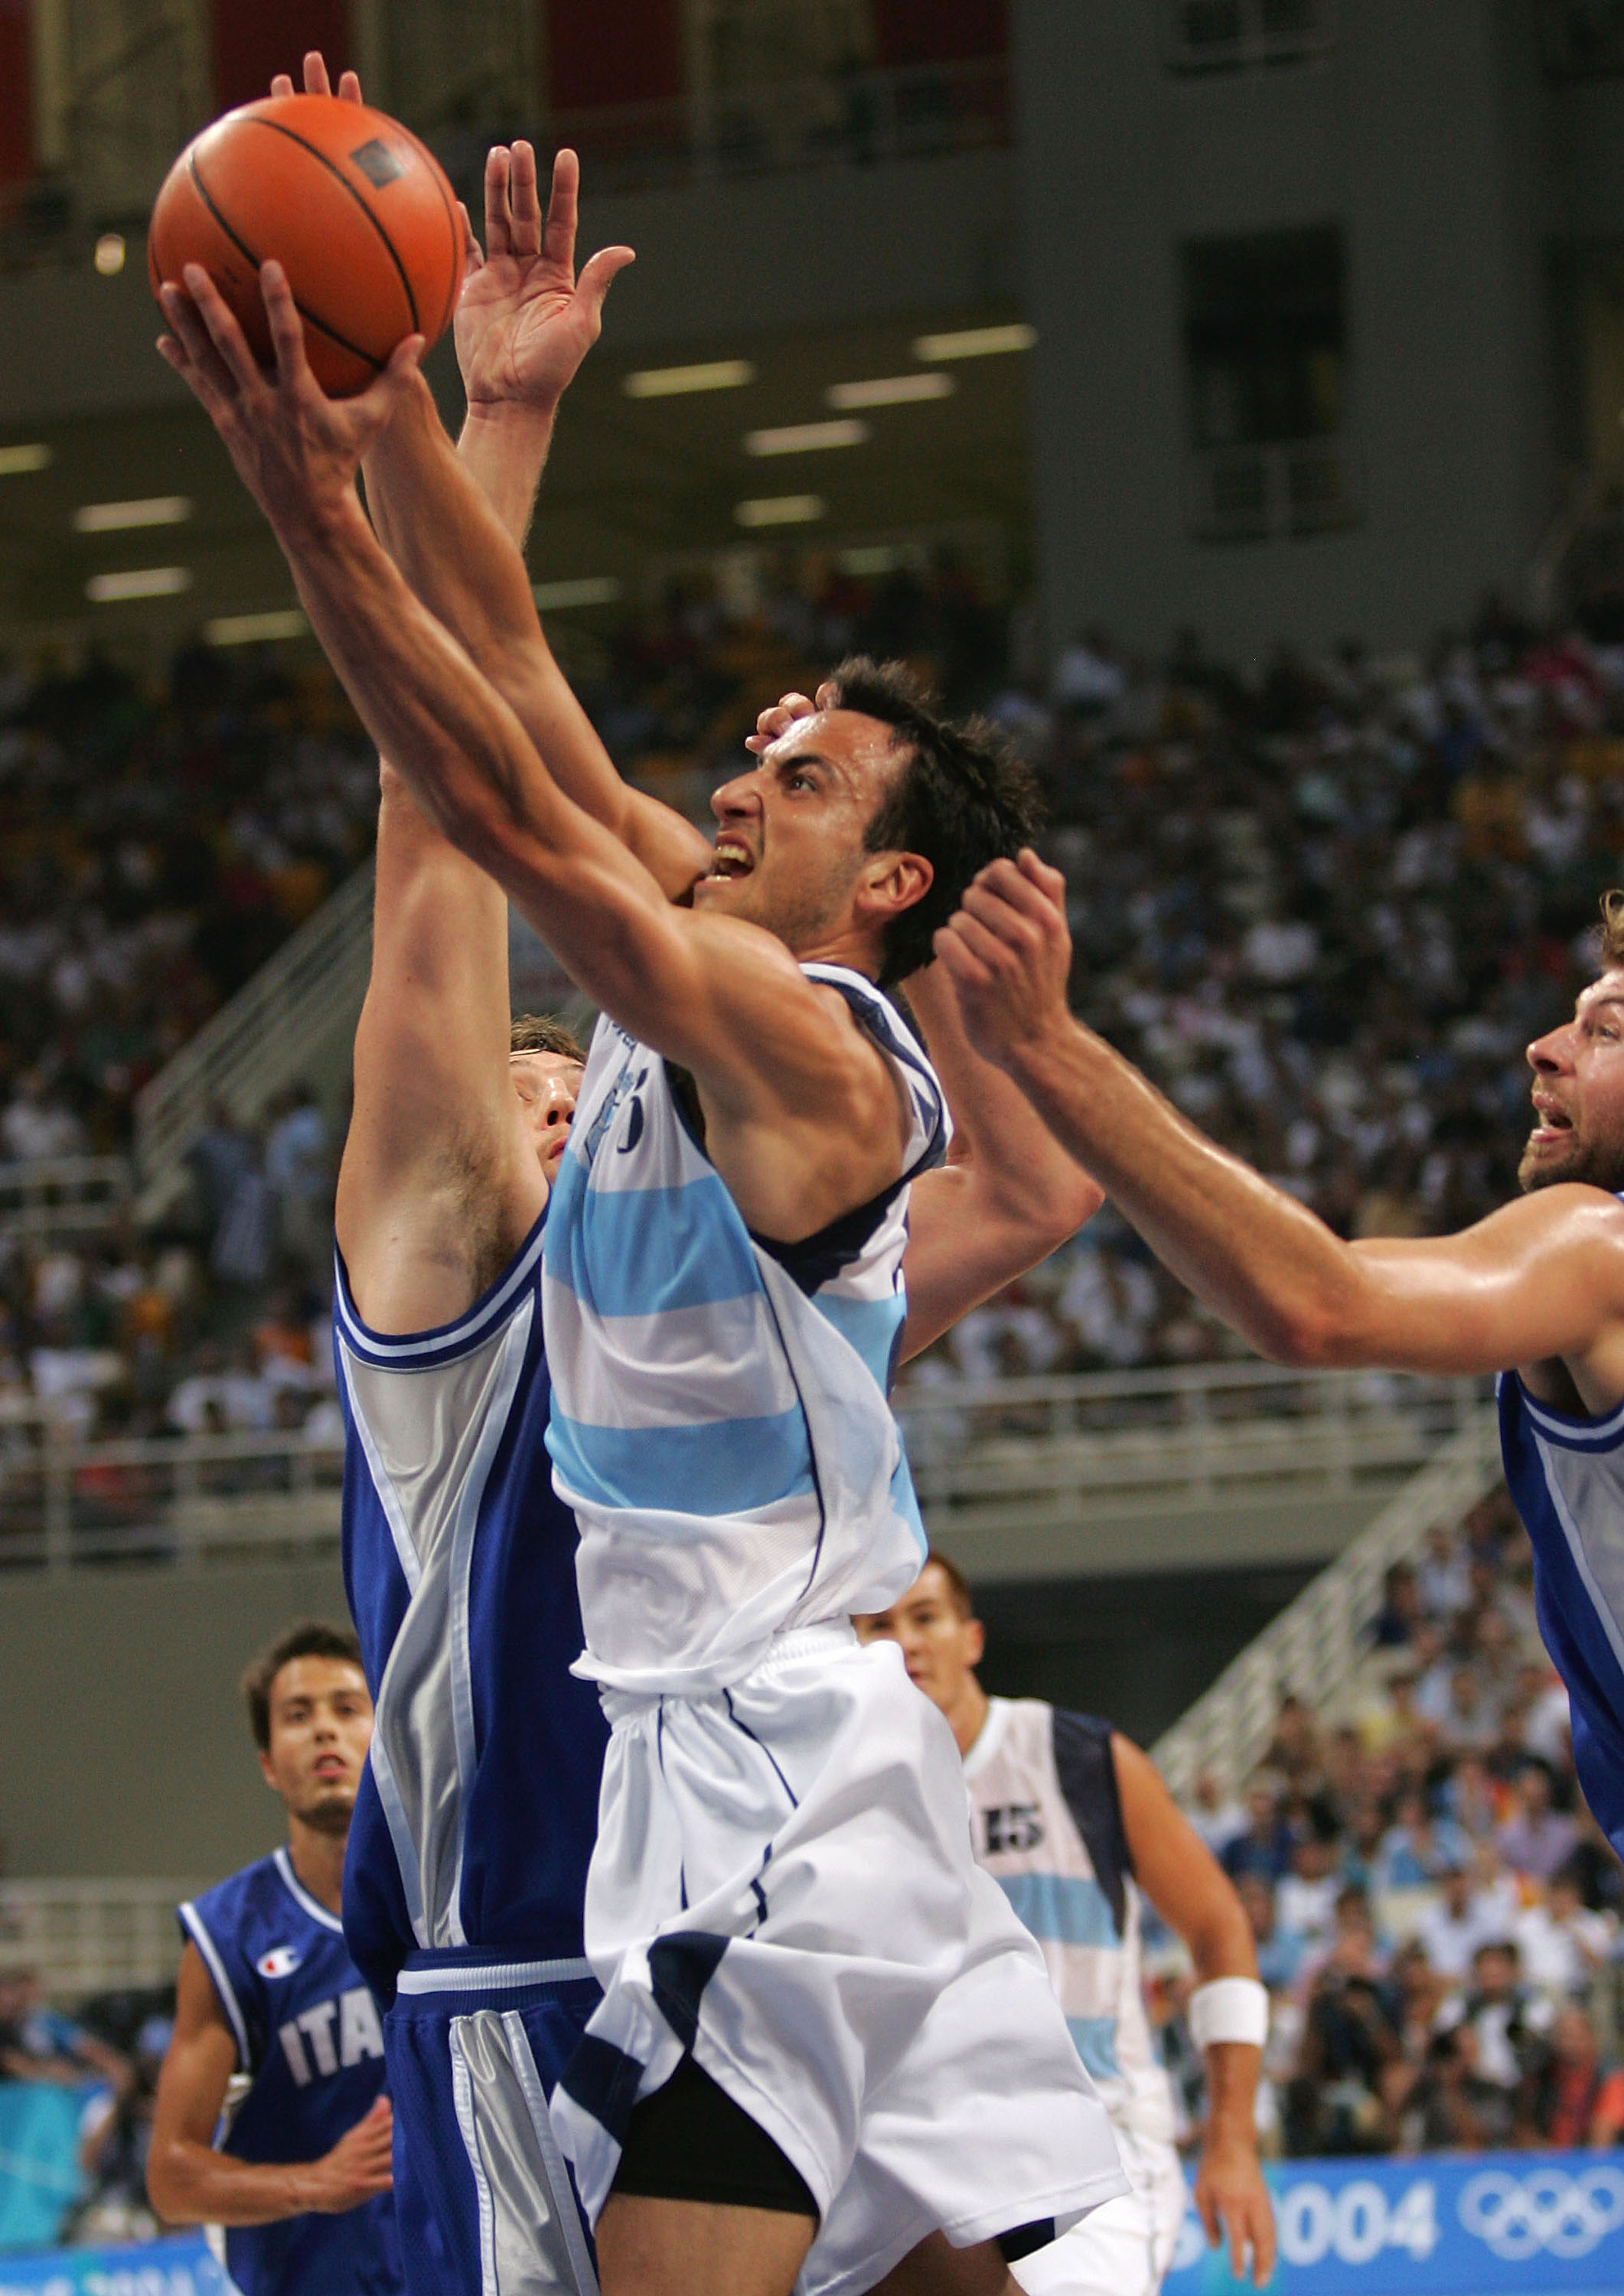 ATHENS - AUGUST 28:  Emanuel Ginobili #5 of Argentina shoots over the defense of Italy during the men's basketball gold medal contest game on August 28, 2004 during the Athens 2004 Summer Olympic Games at the Indoor Hall of the Olympic Sports Complex in A